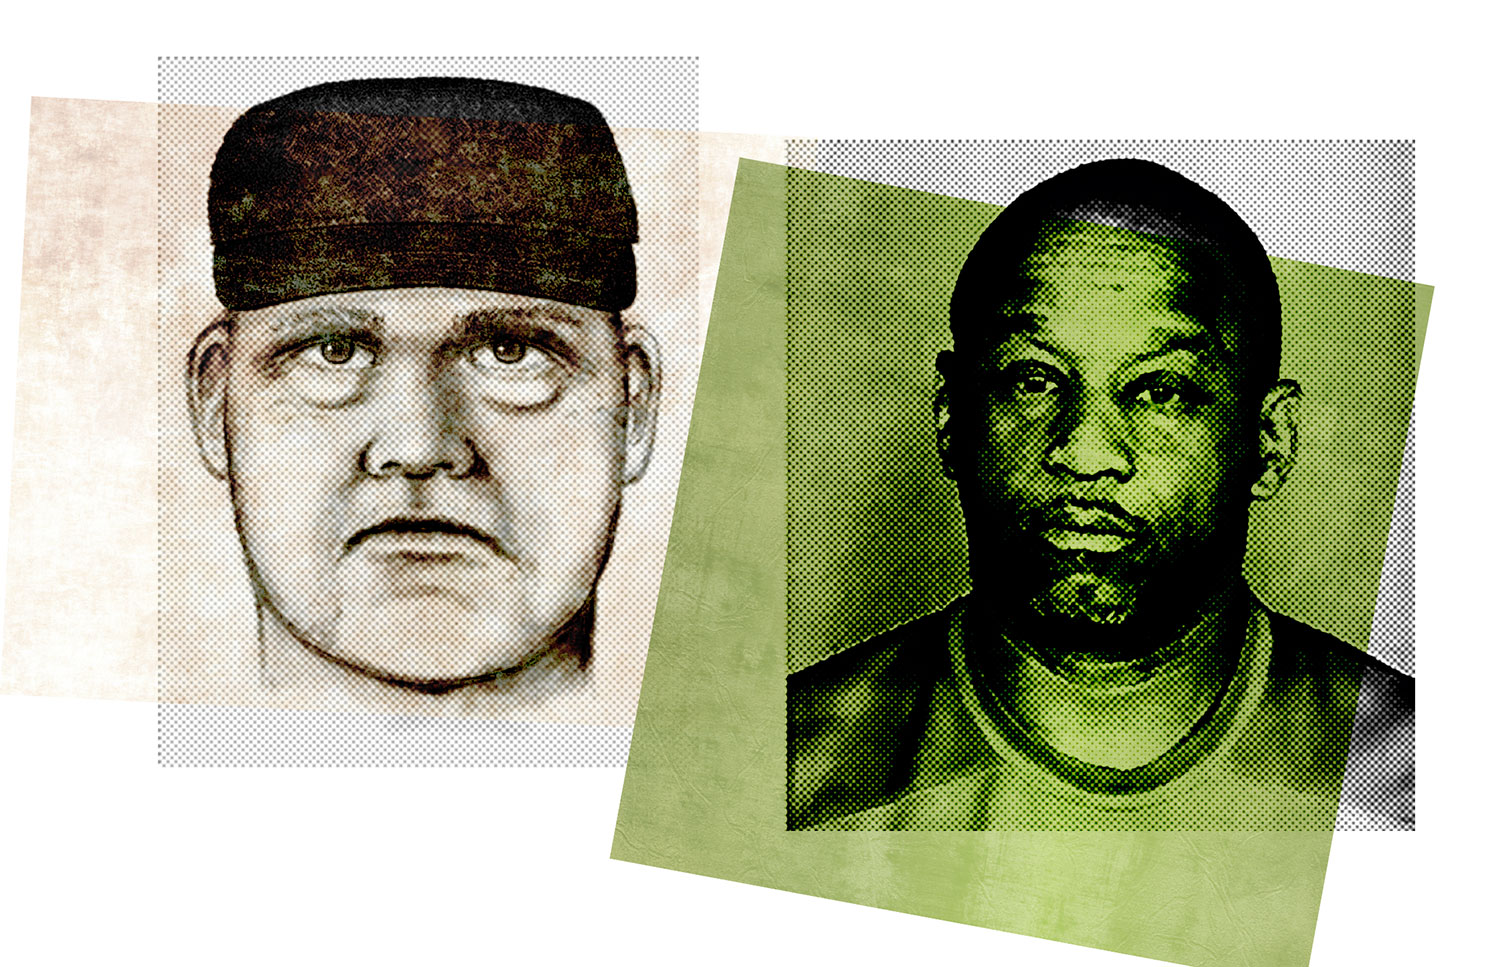 Sketchy likeness: The original police sketch of Jones differed wildly from his 2009 booking photo, right; Photos courtesy Phoenix P.D.; Scottsdale P.D.